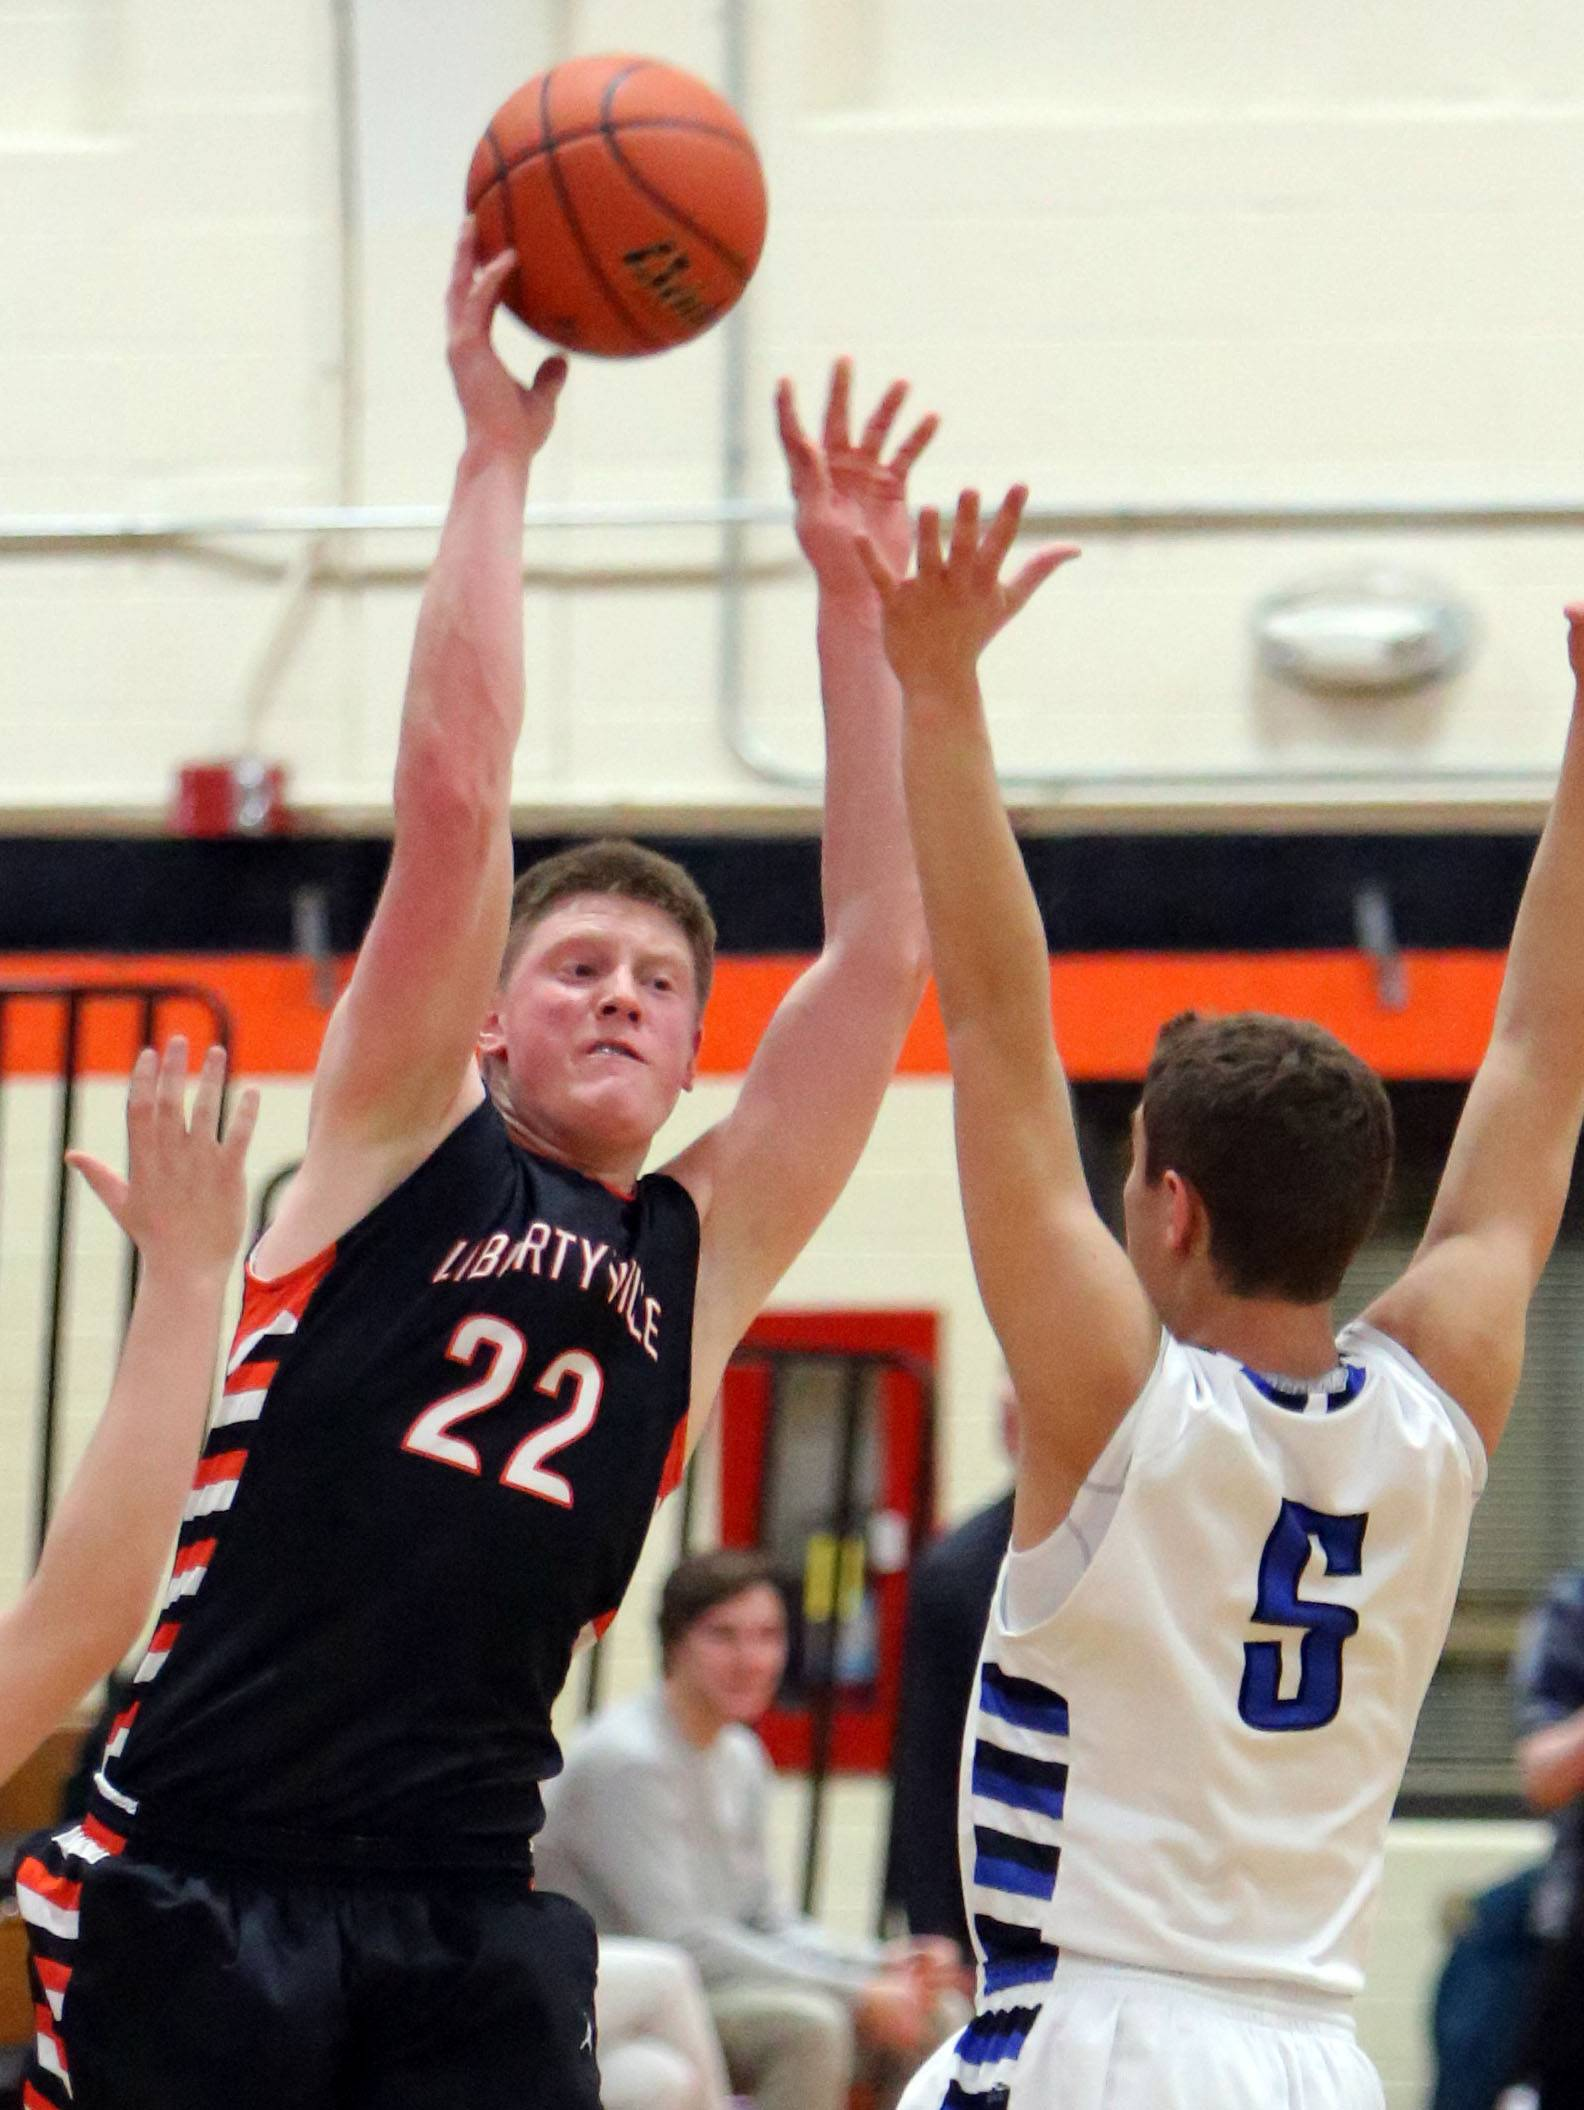 Libertyville's Jack Lipp, left, passes over Highland Park's Max Goshen during Class 4A regional semifinal play at Libertyville on Tuesday.